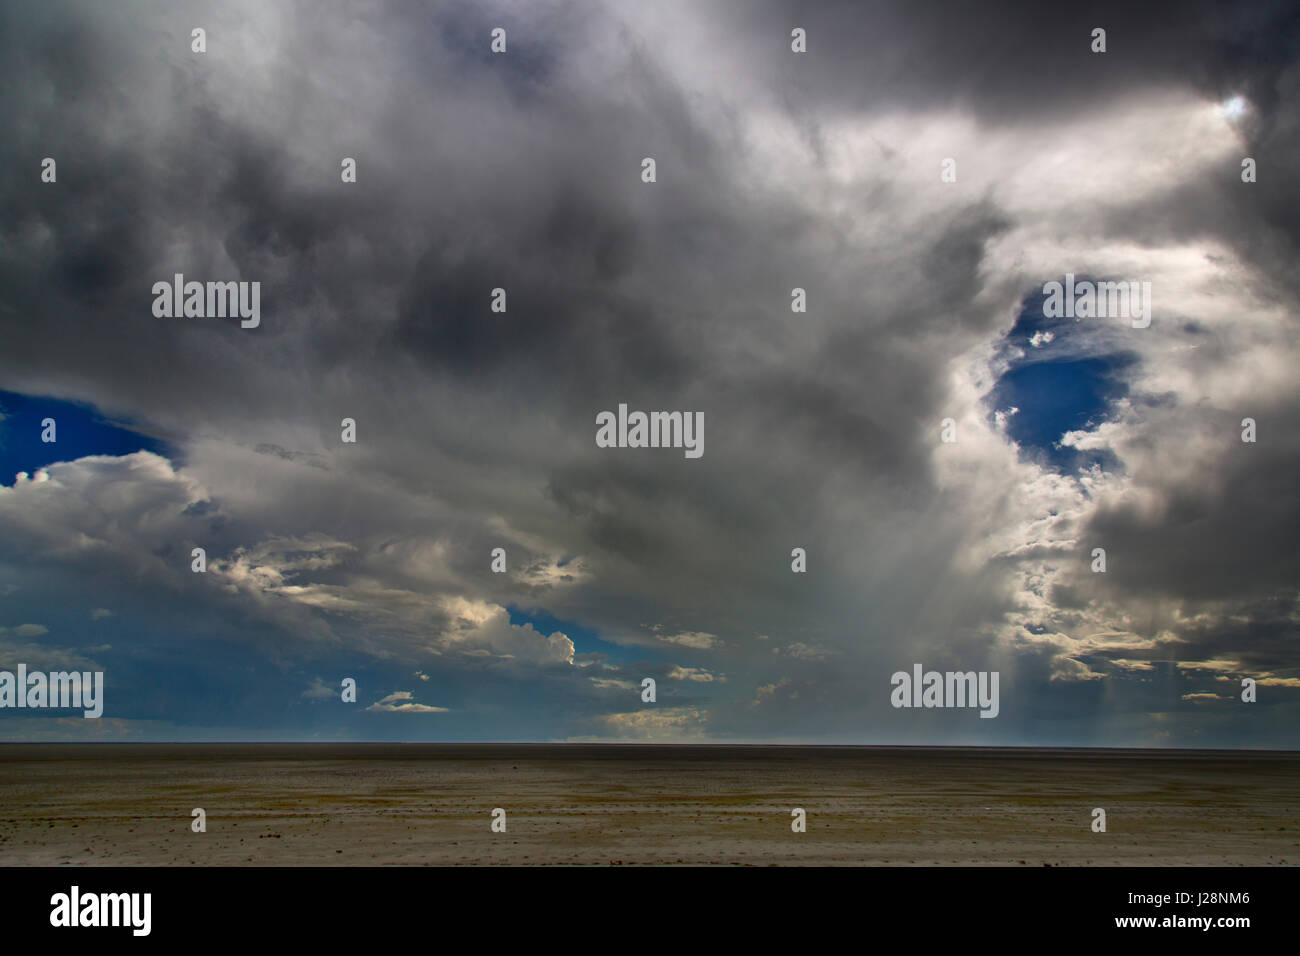 Saltpans at Etosha national park and brfooding sky Namibia - Stock Image